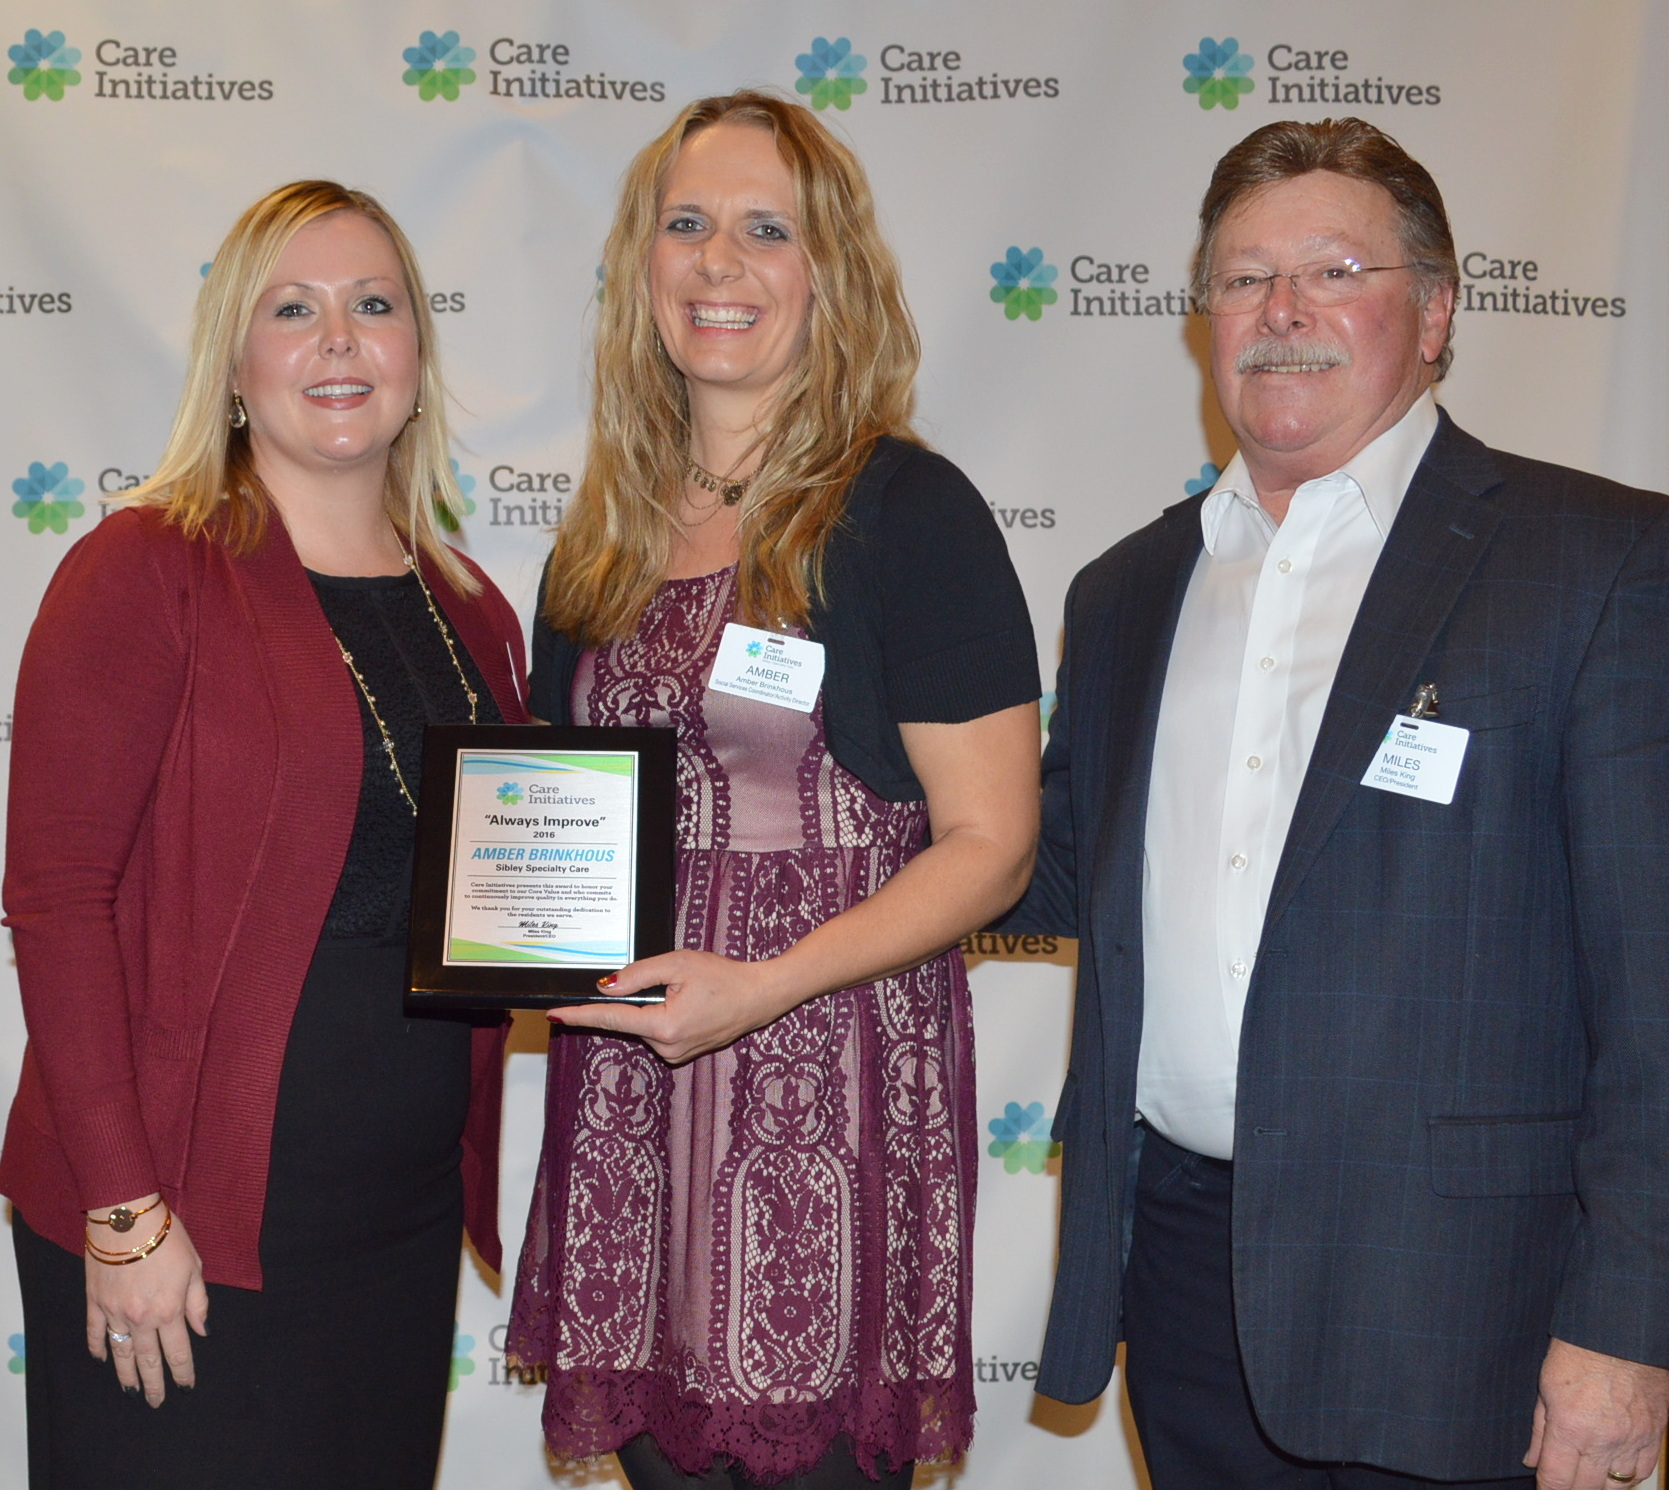 Sibley Specialty Care Always Improve award